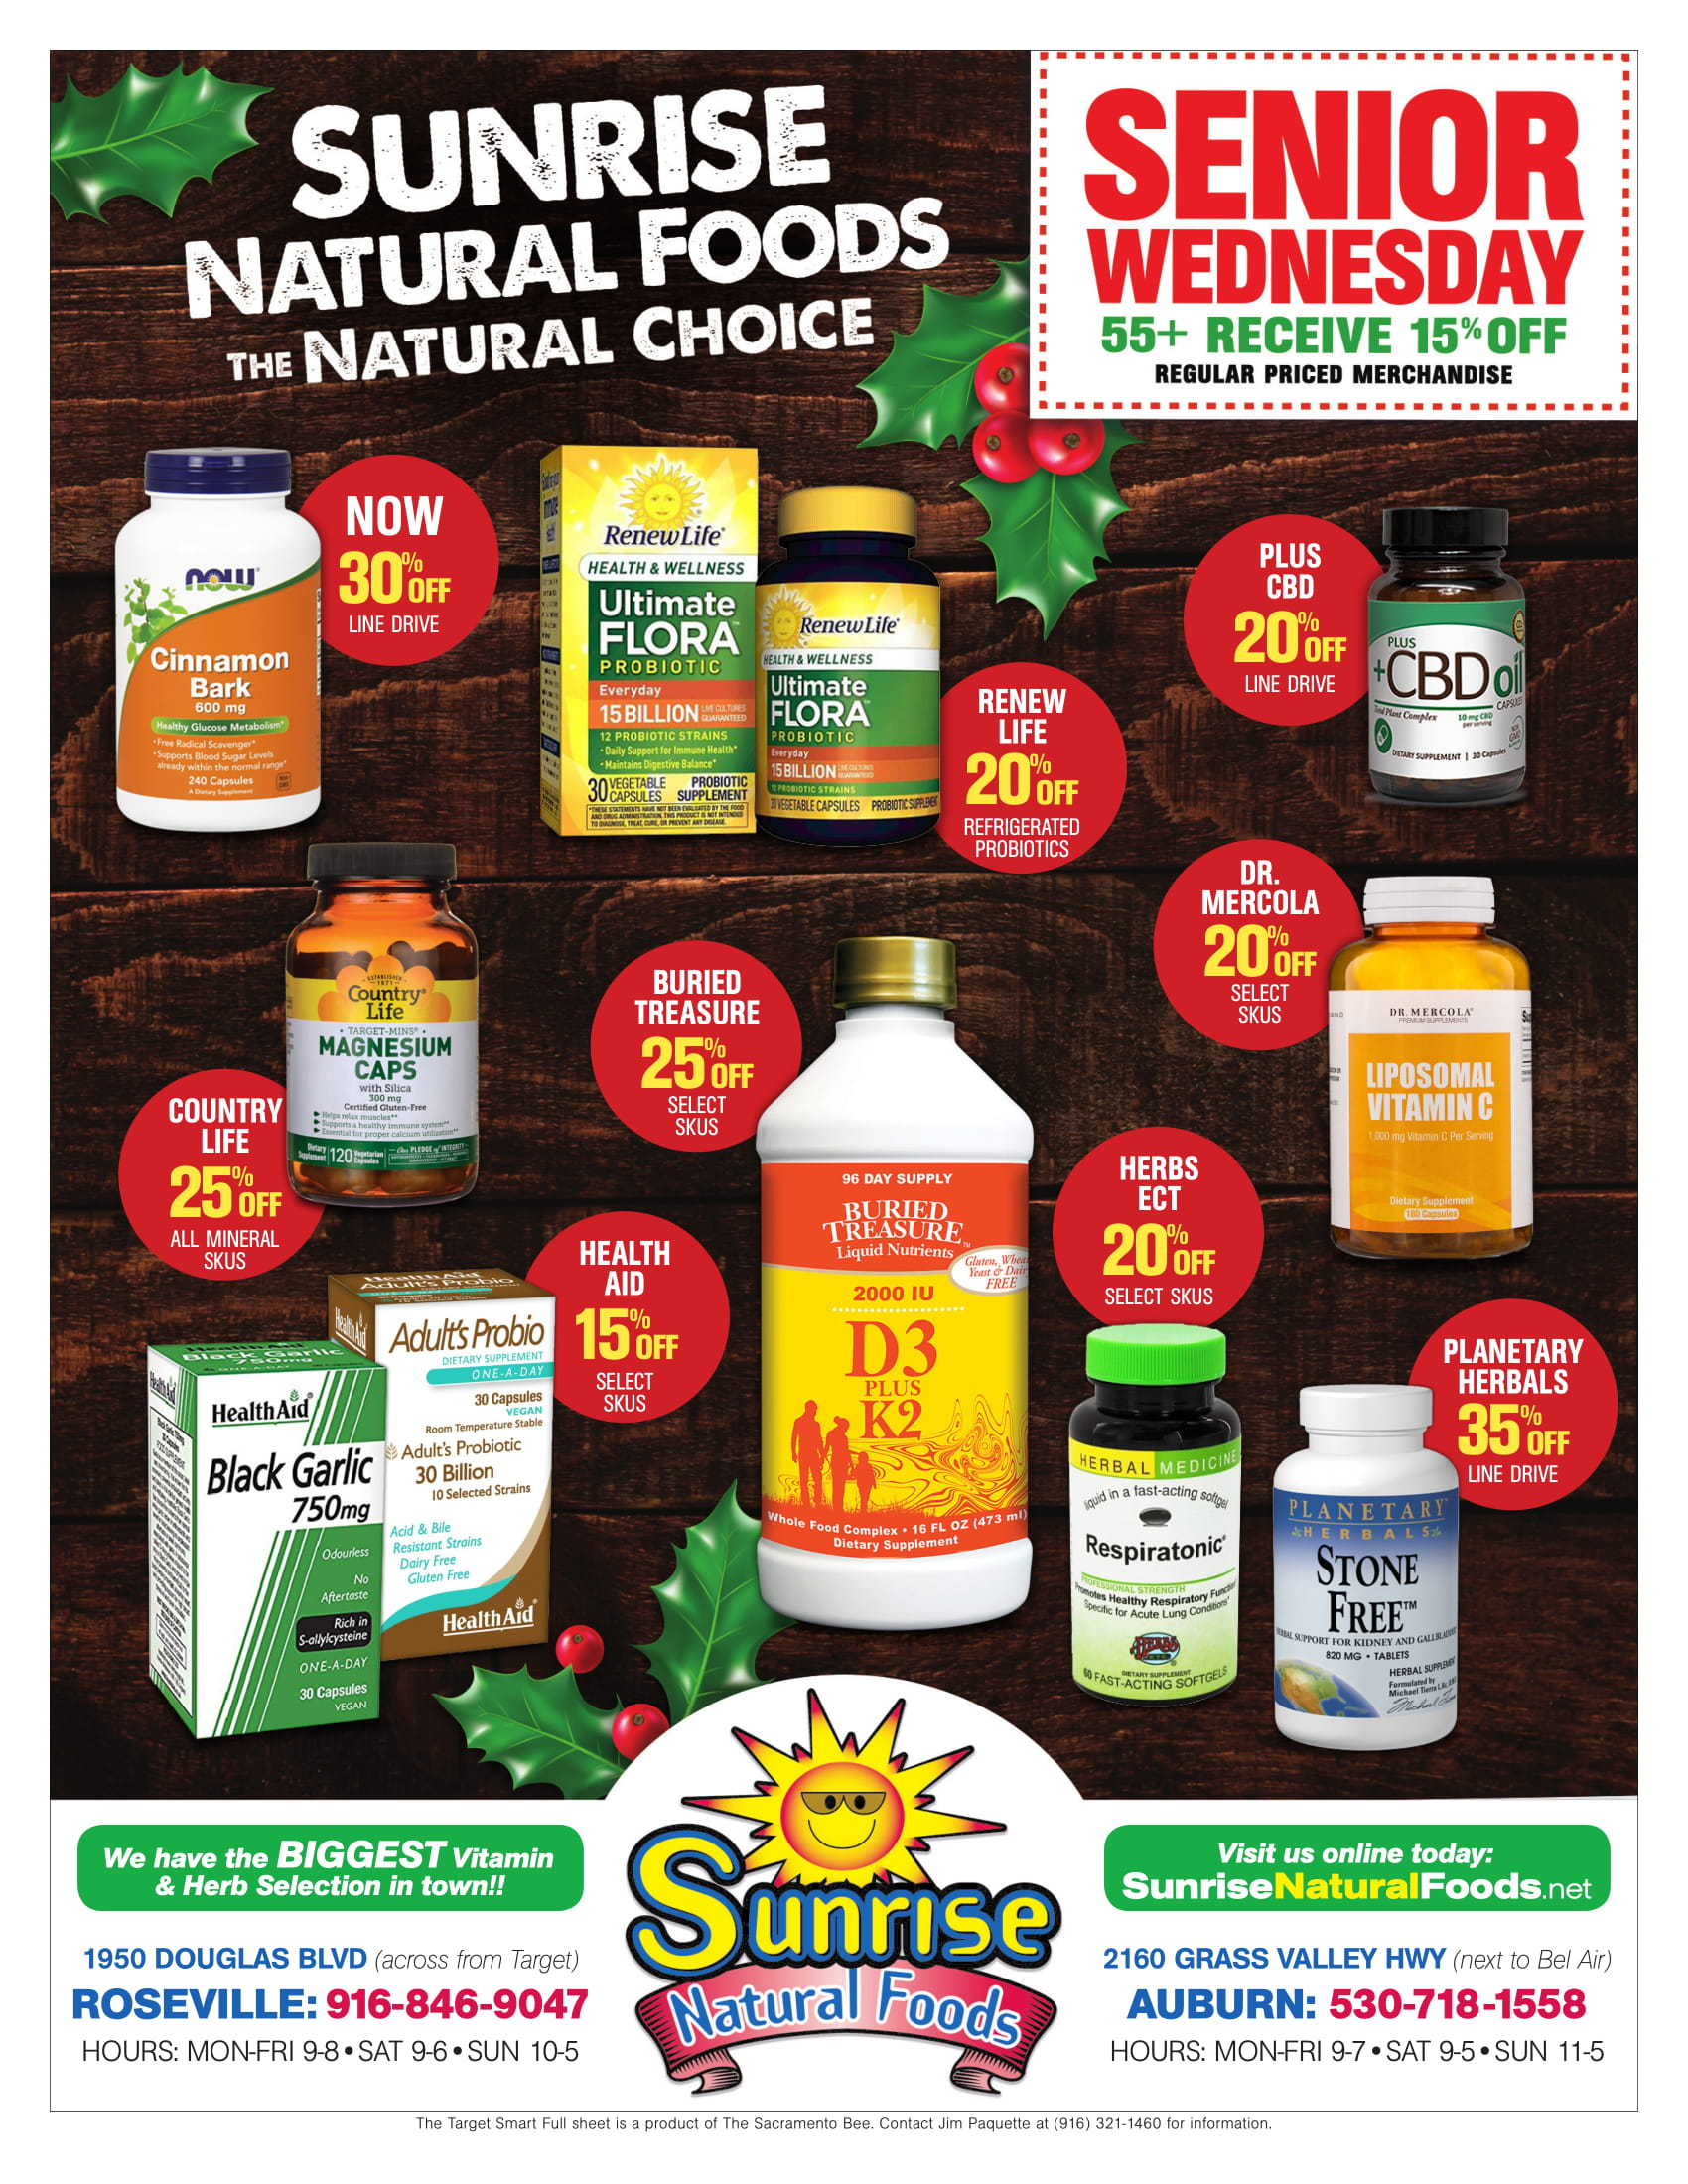 Sunrise Natural Foods December 2018 Ad Page 2